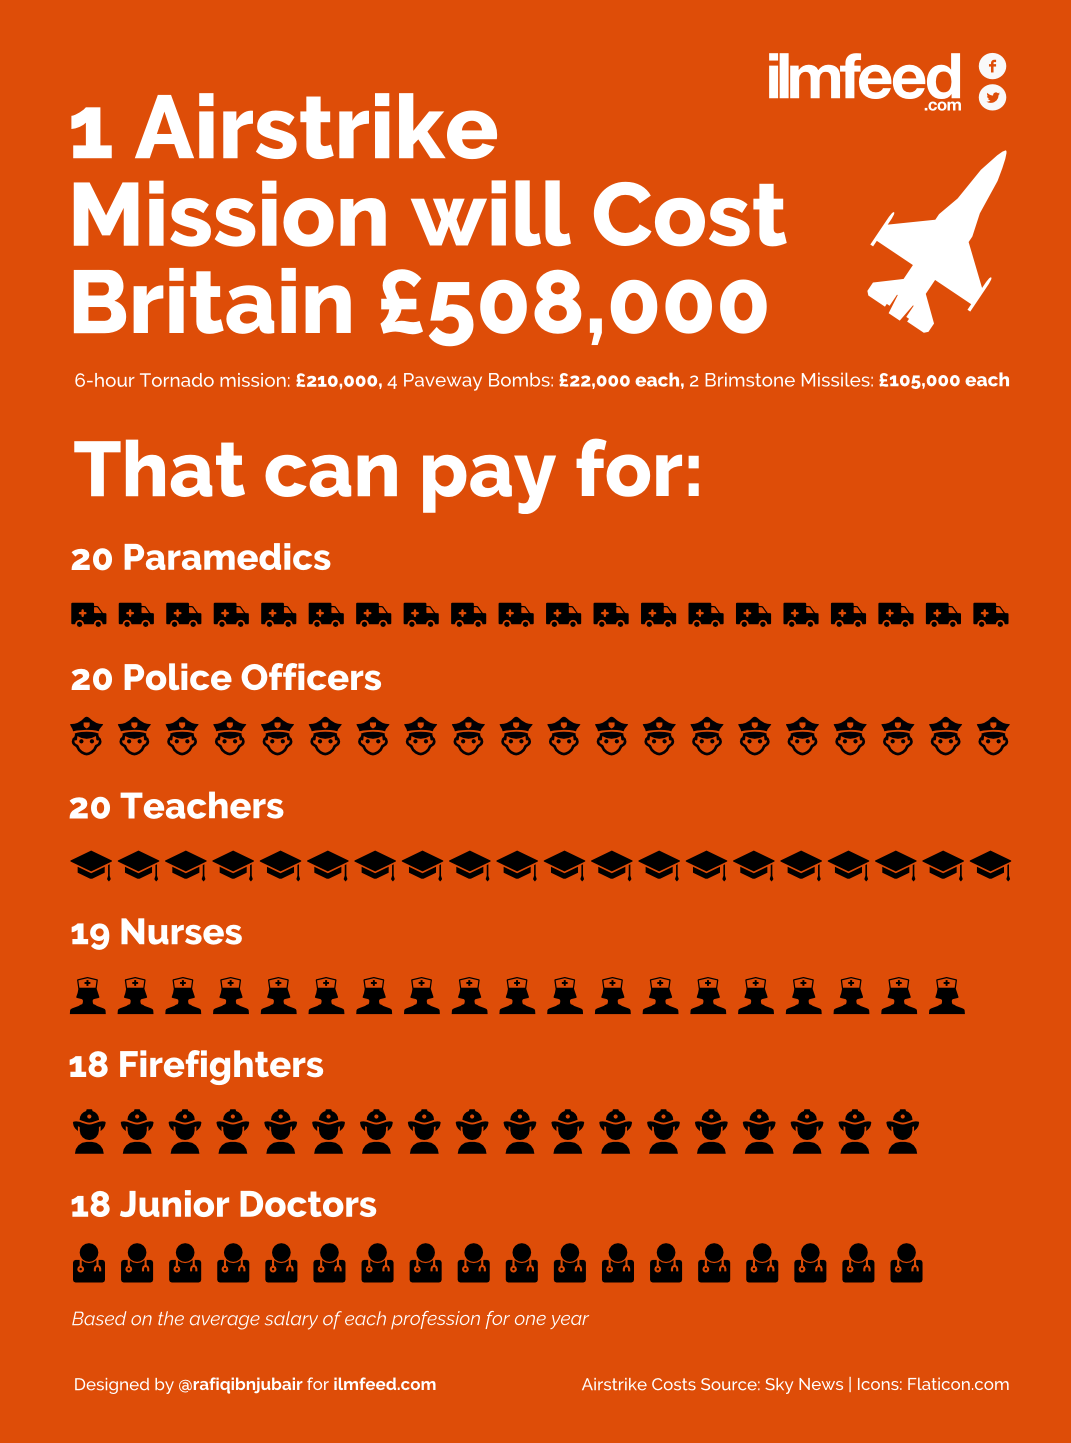 syria air strikes no 1 What The Cost Of One Airstrike In Syria Could Pay For